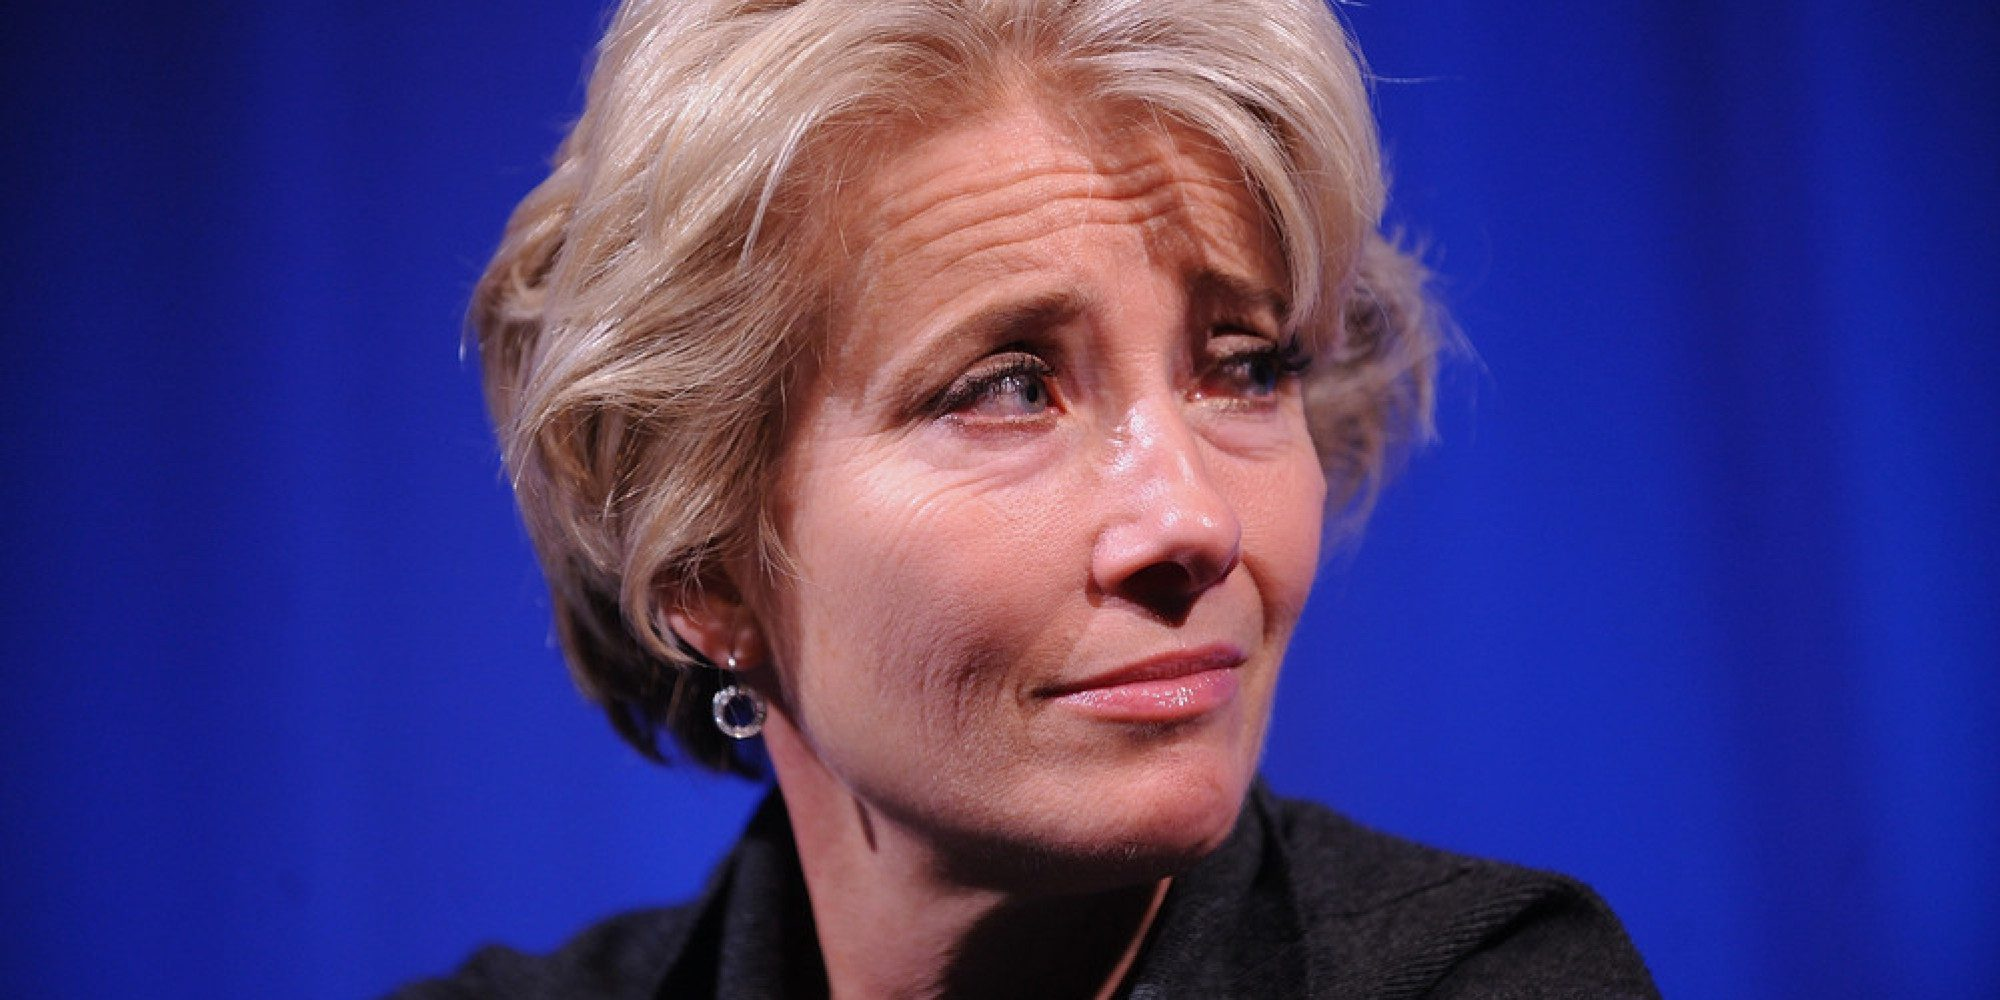 Emma Thompson Steps Out of Skydance Animation's 'Luck' In Response to John Lasseter Hire